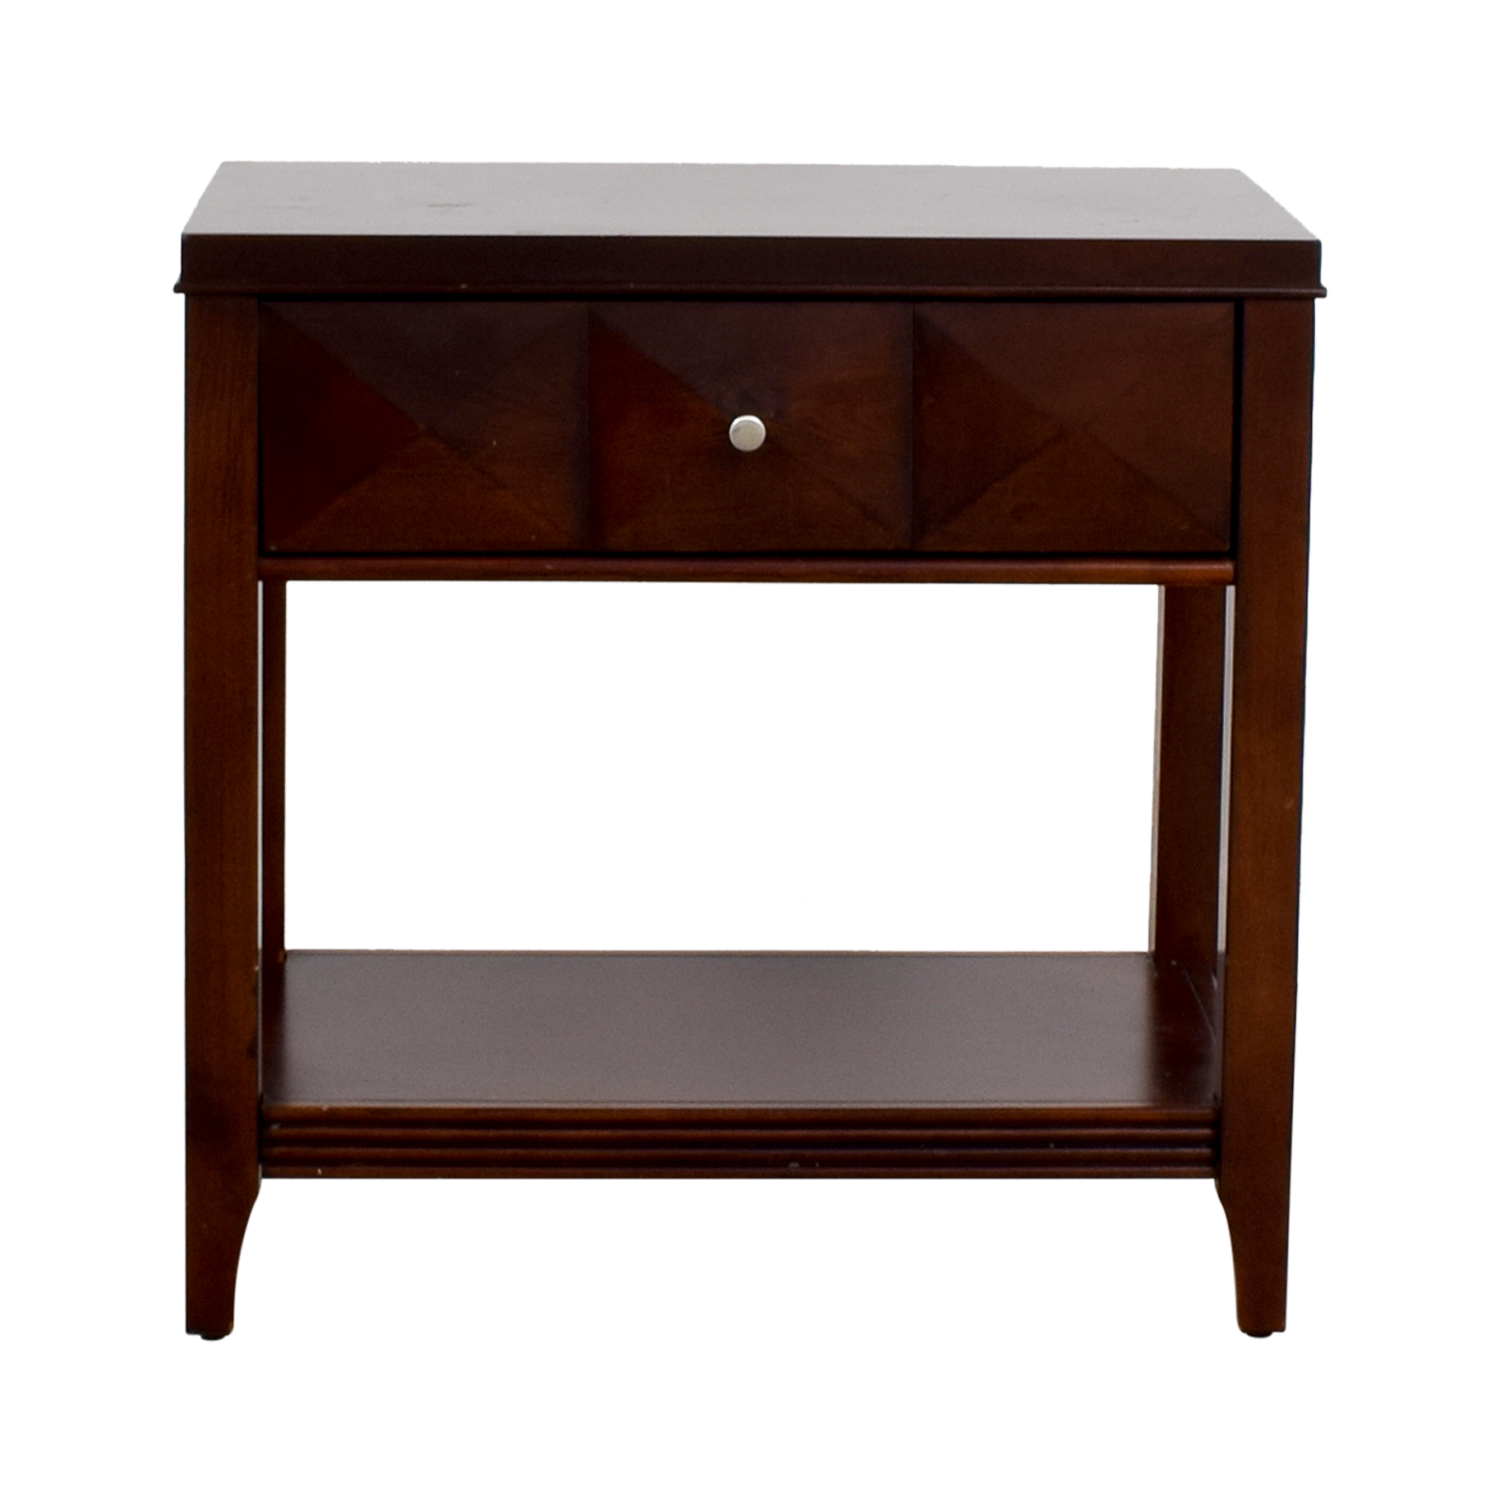 Raymour & Flanigan Raymour & Flanigan Espresso Single-Drawer Nightstand coupon